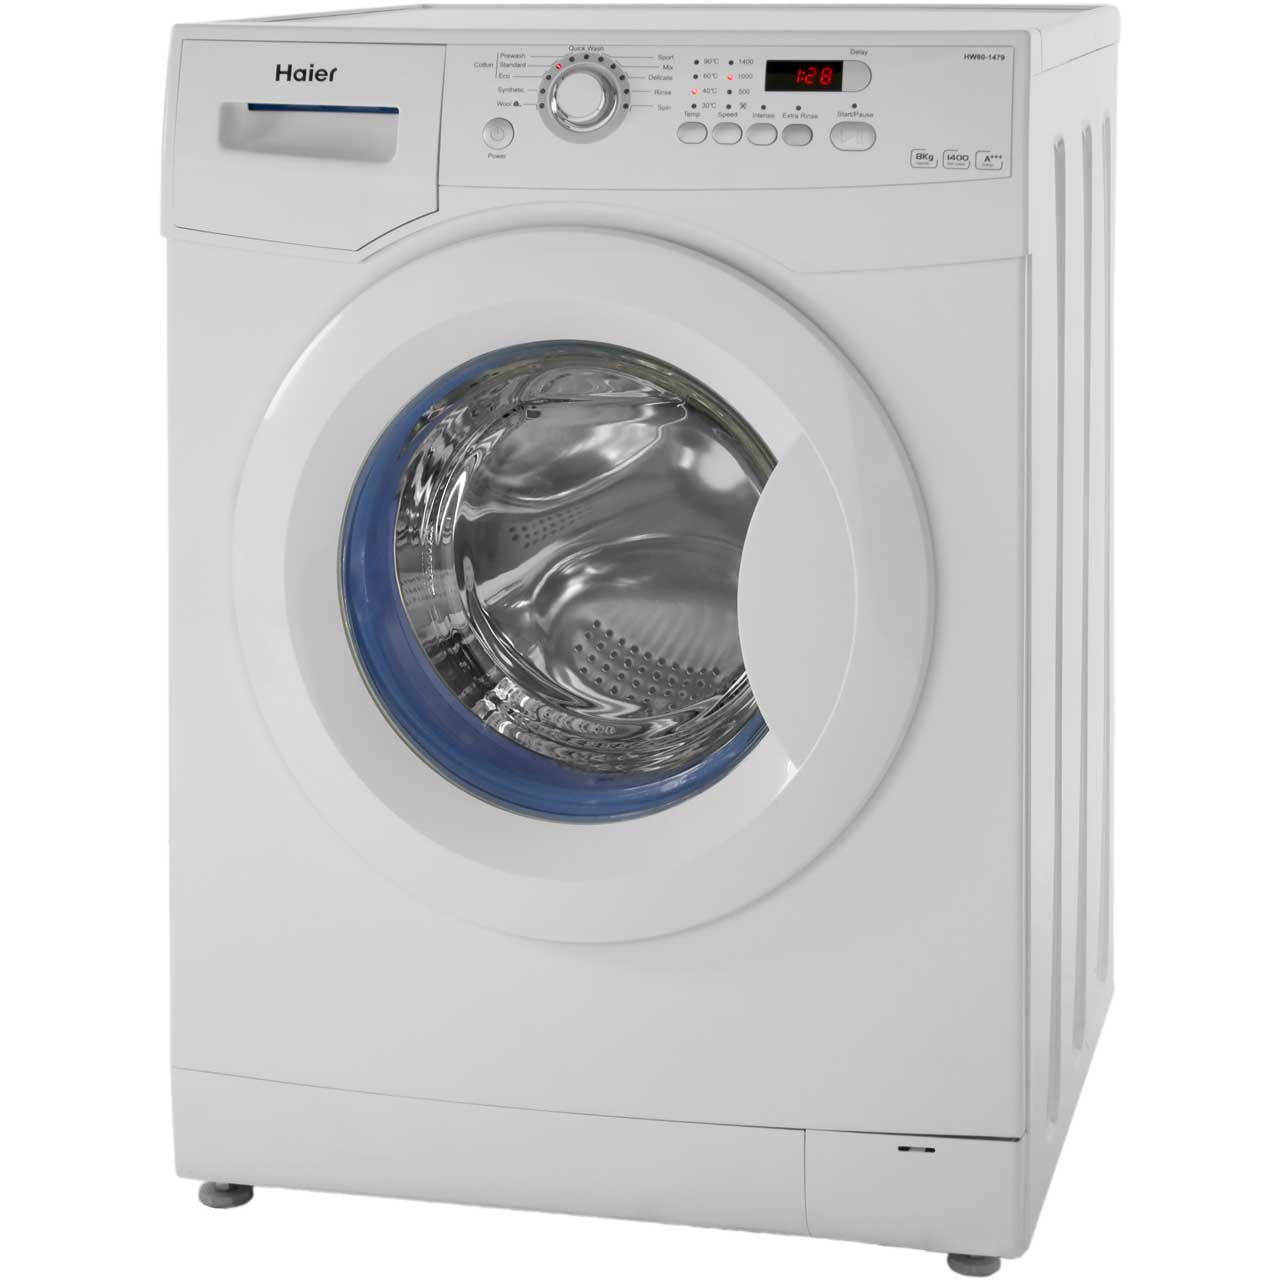 Haier Washing Machine ~ Buy cheap haier washing machine compare machines